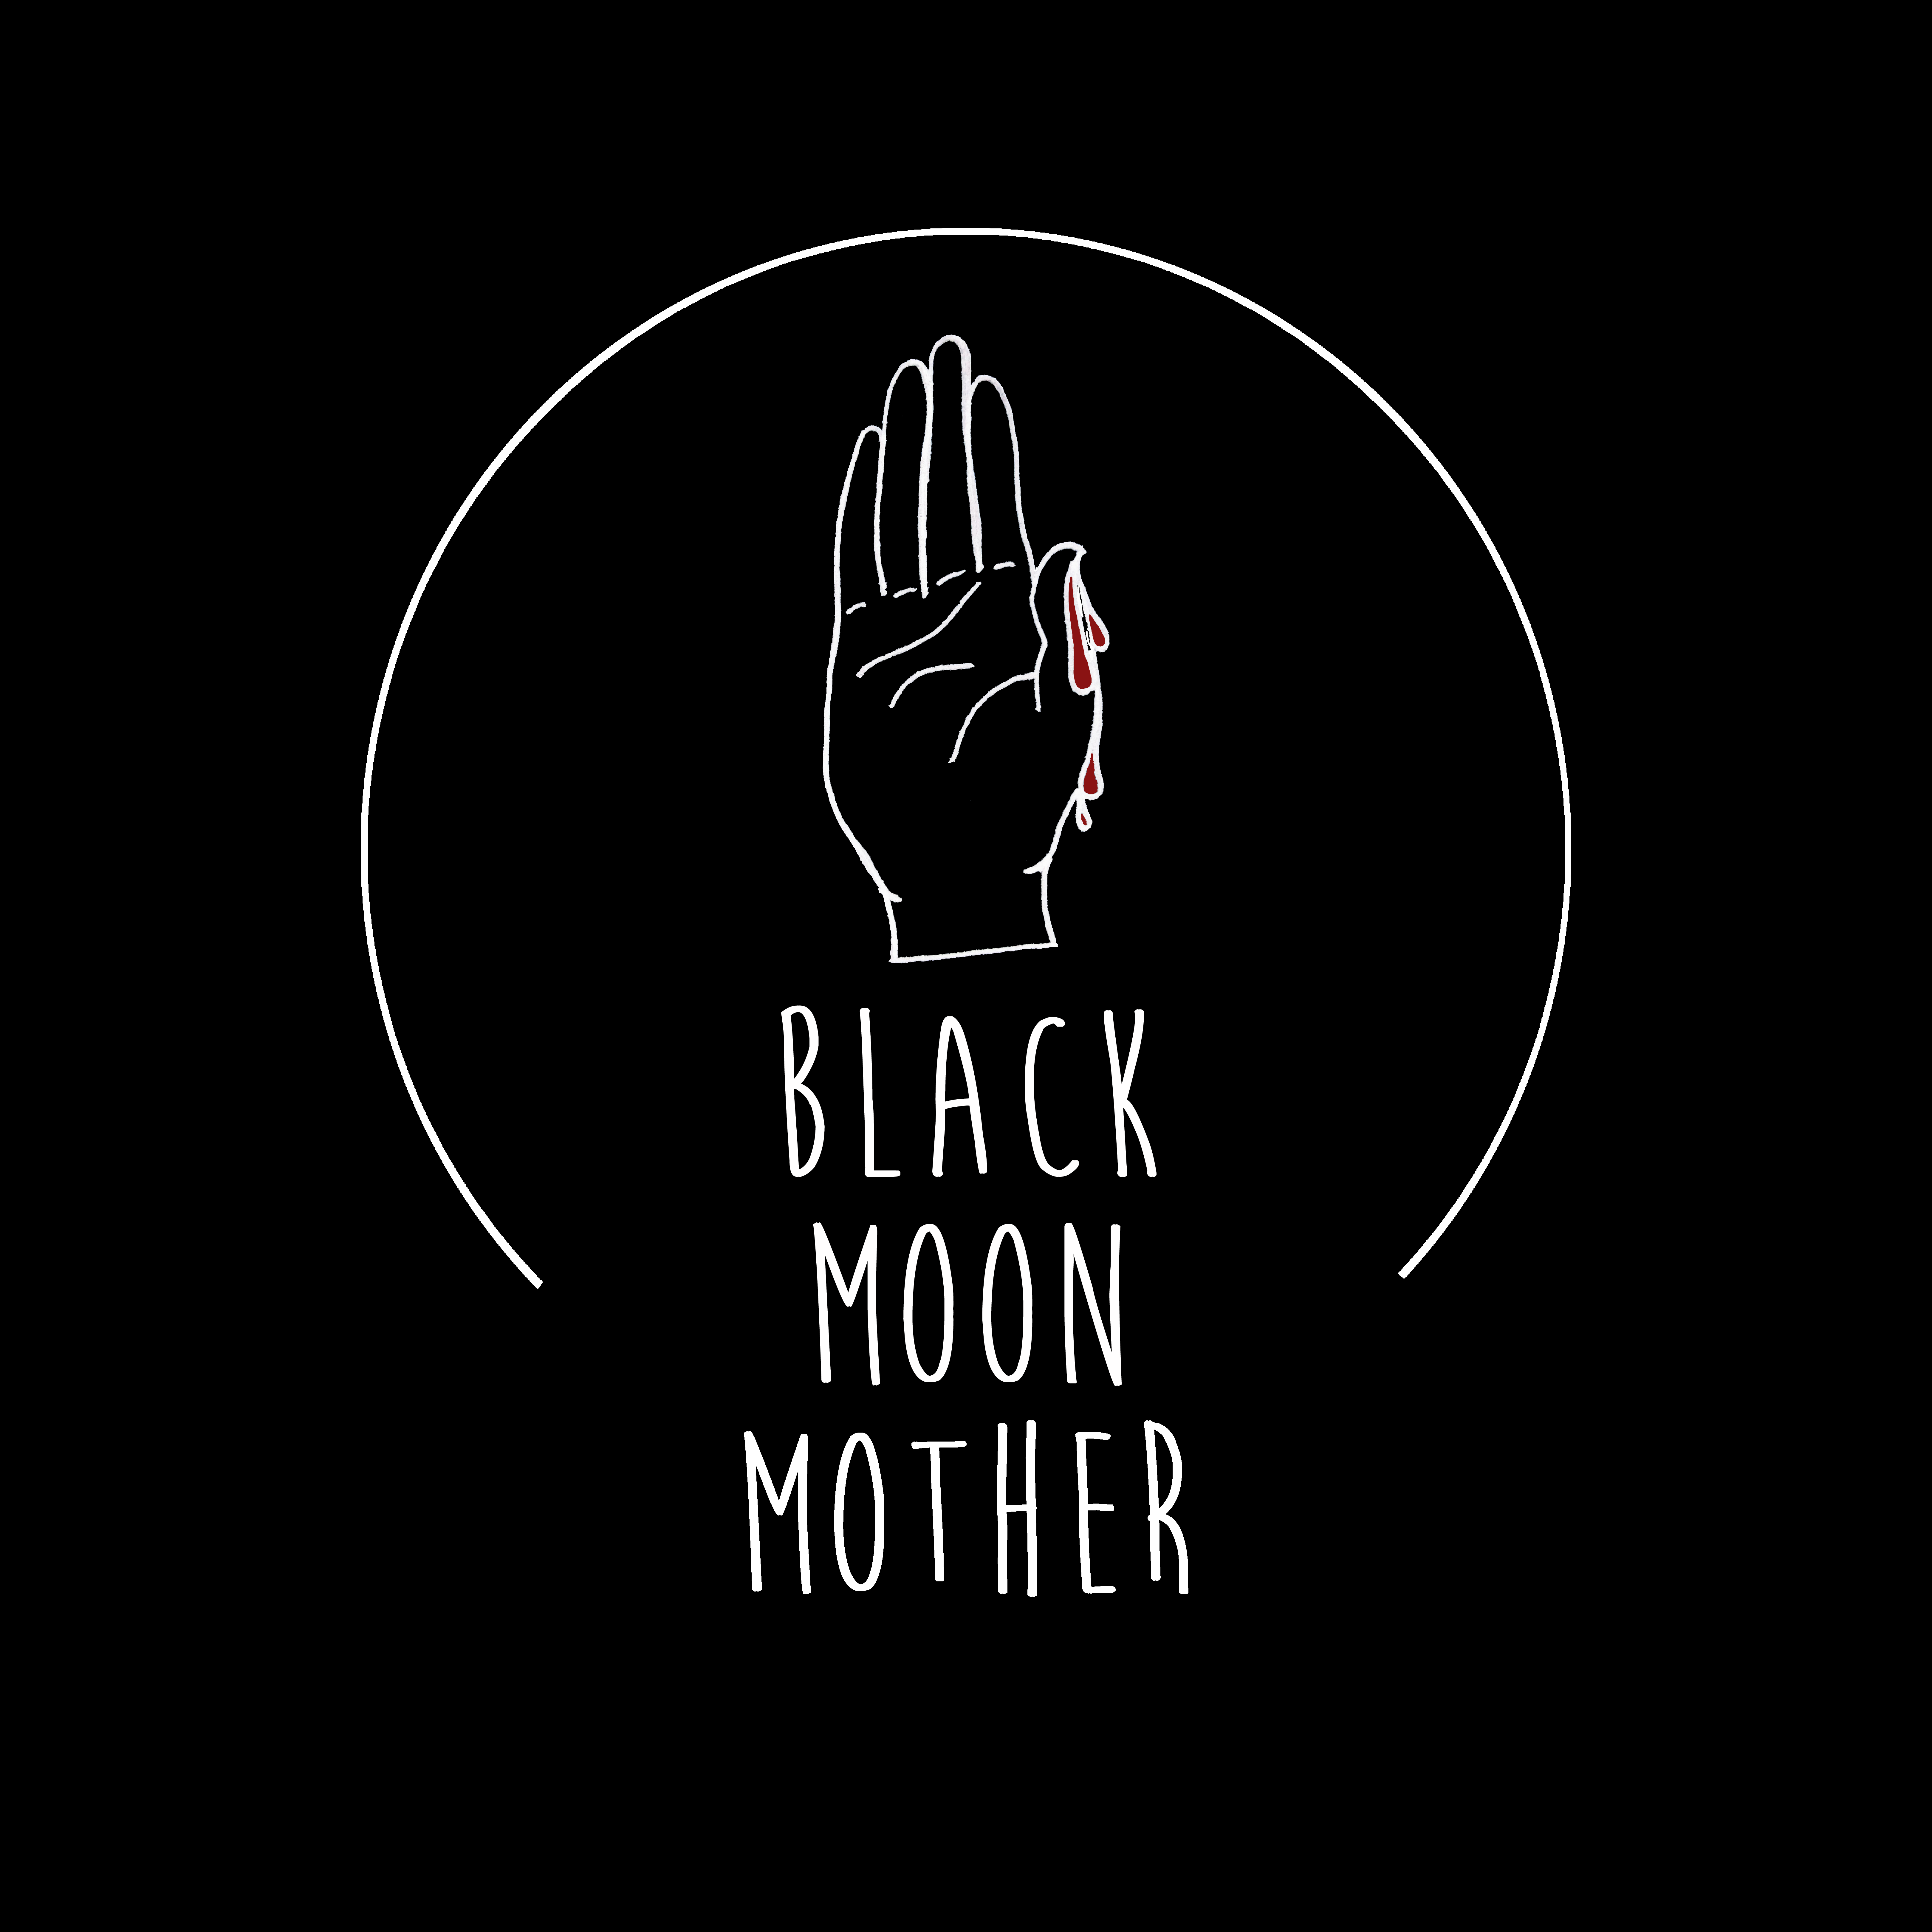 Black Moon Mother